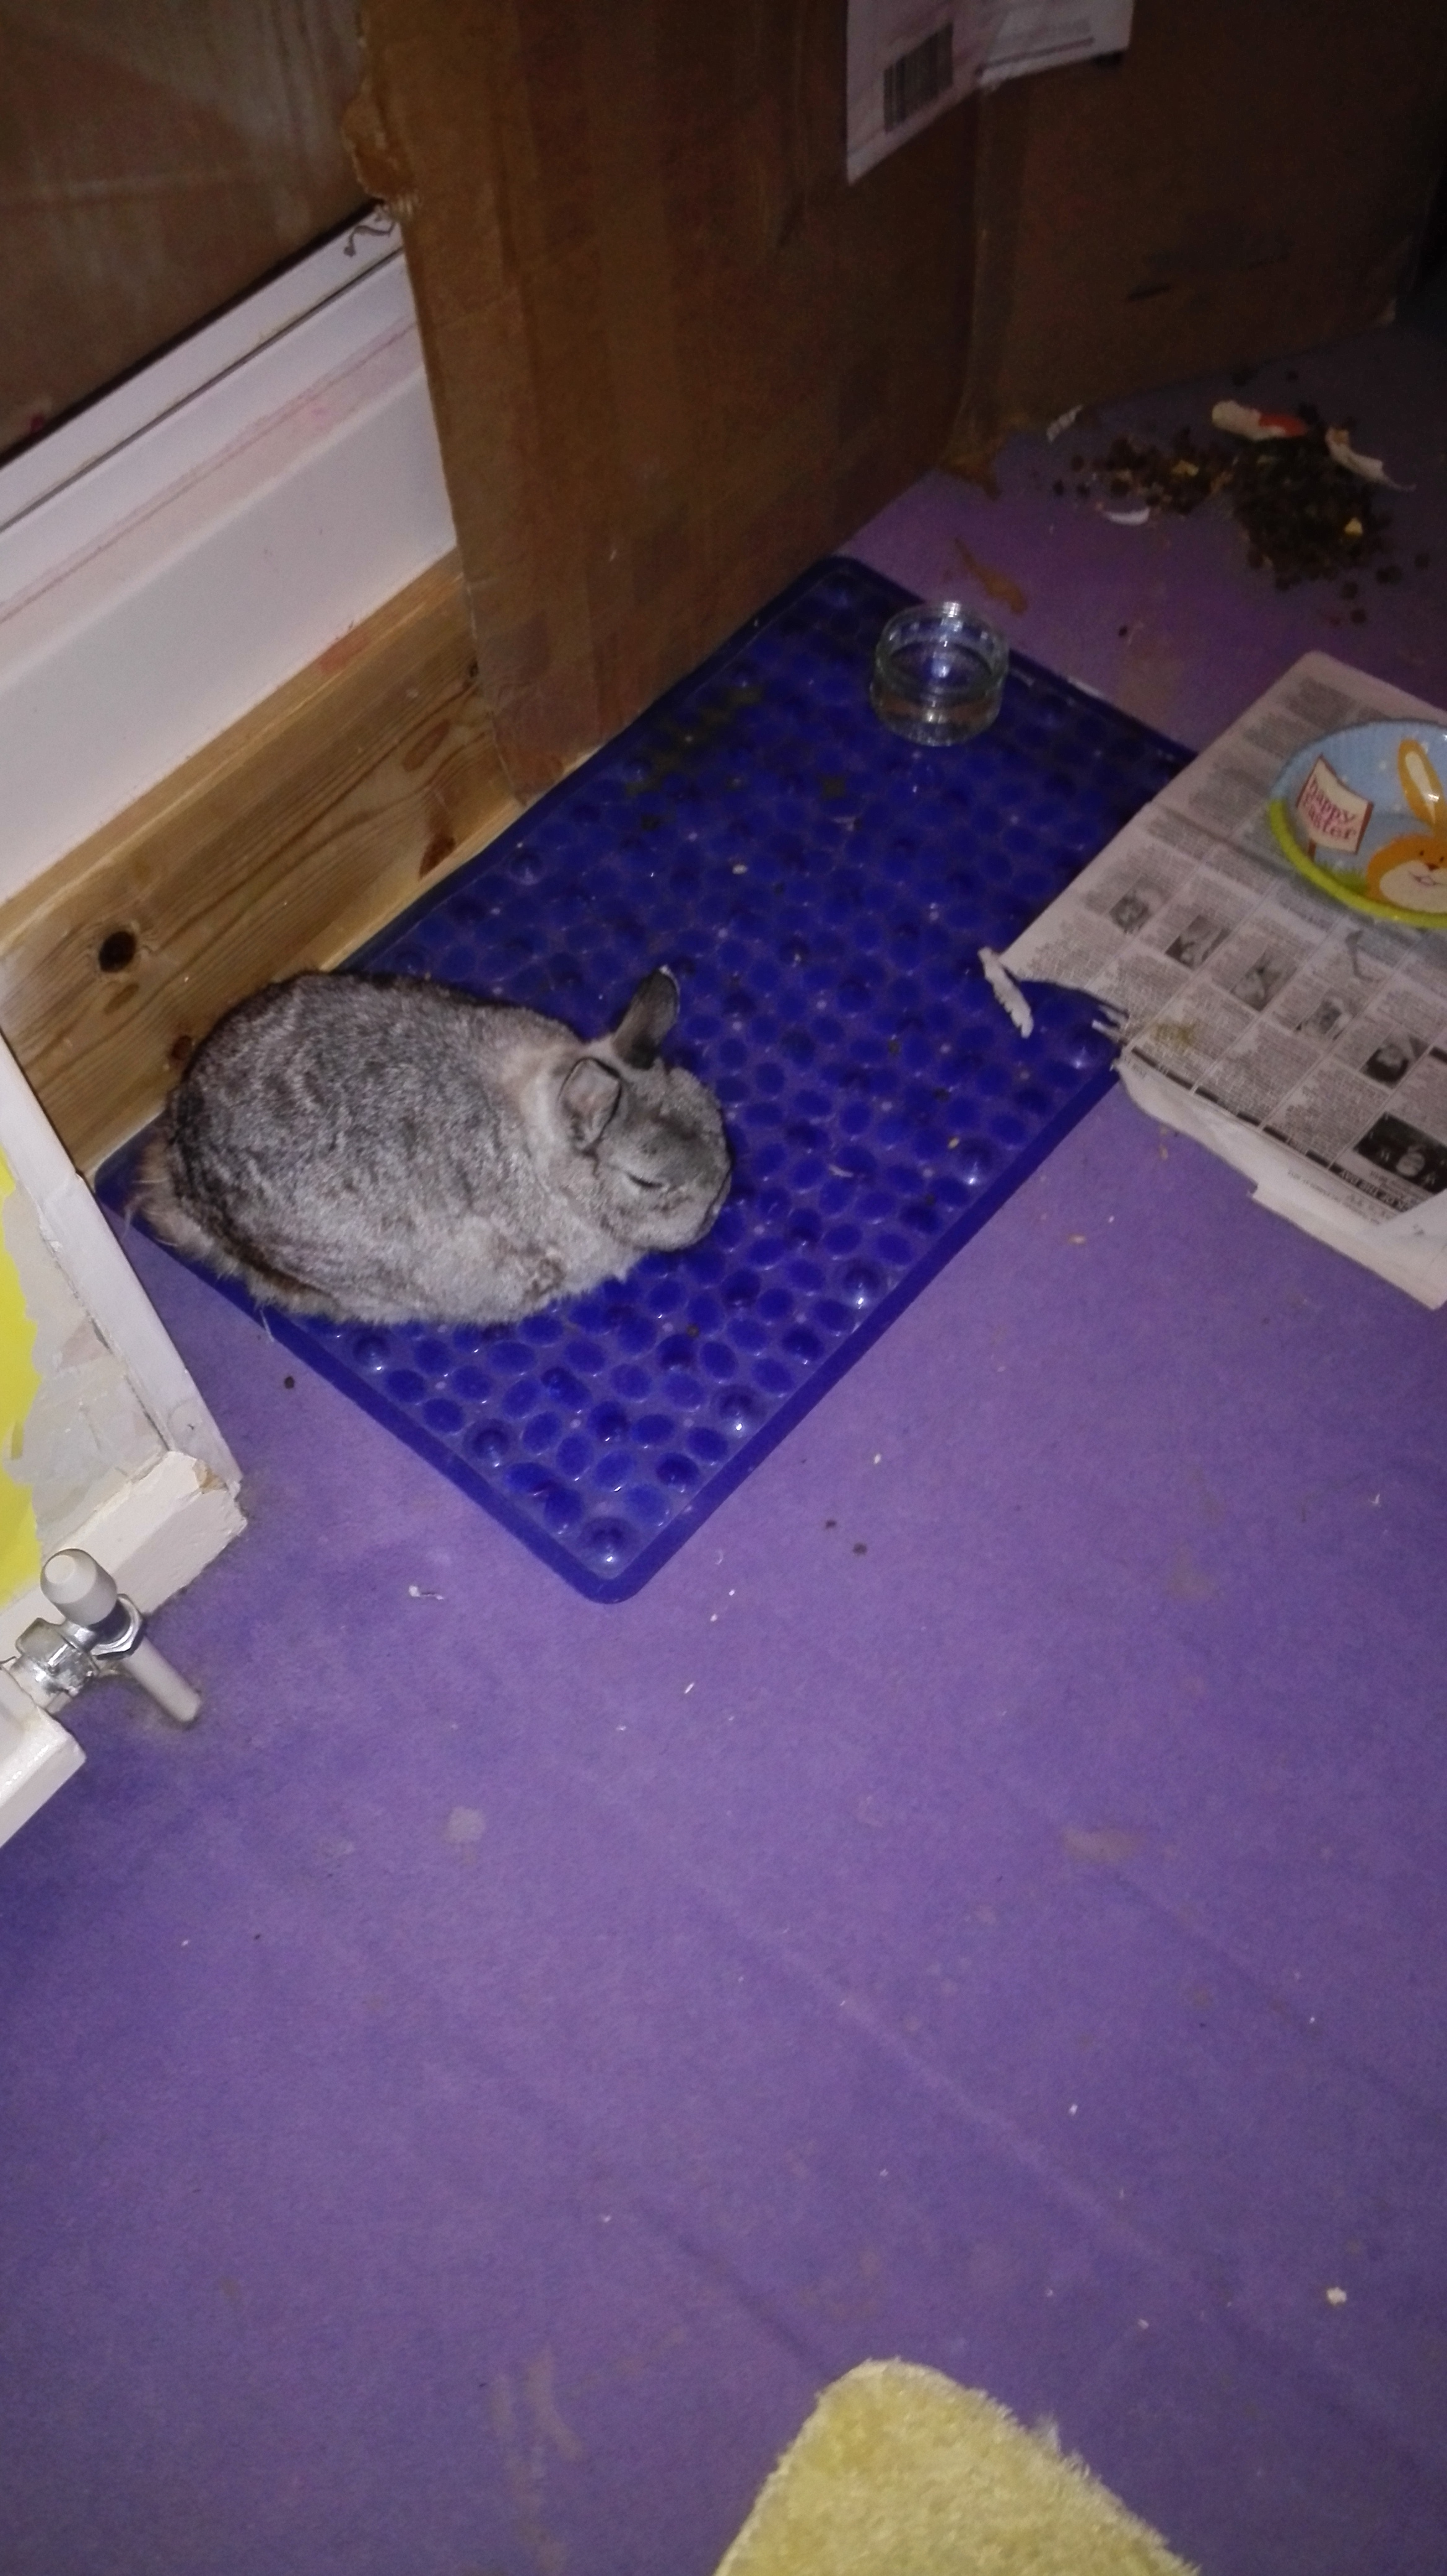 Sebastian on the shower mat, having rearranged his living space to his satisfaction.